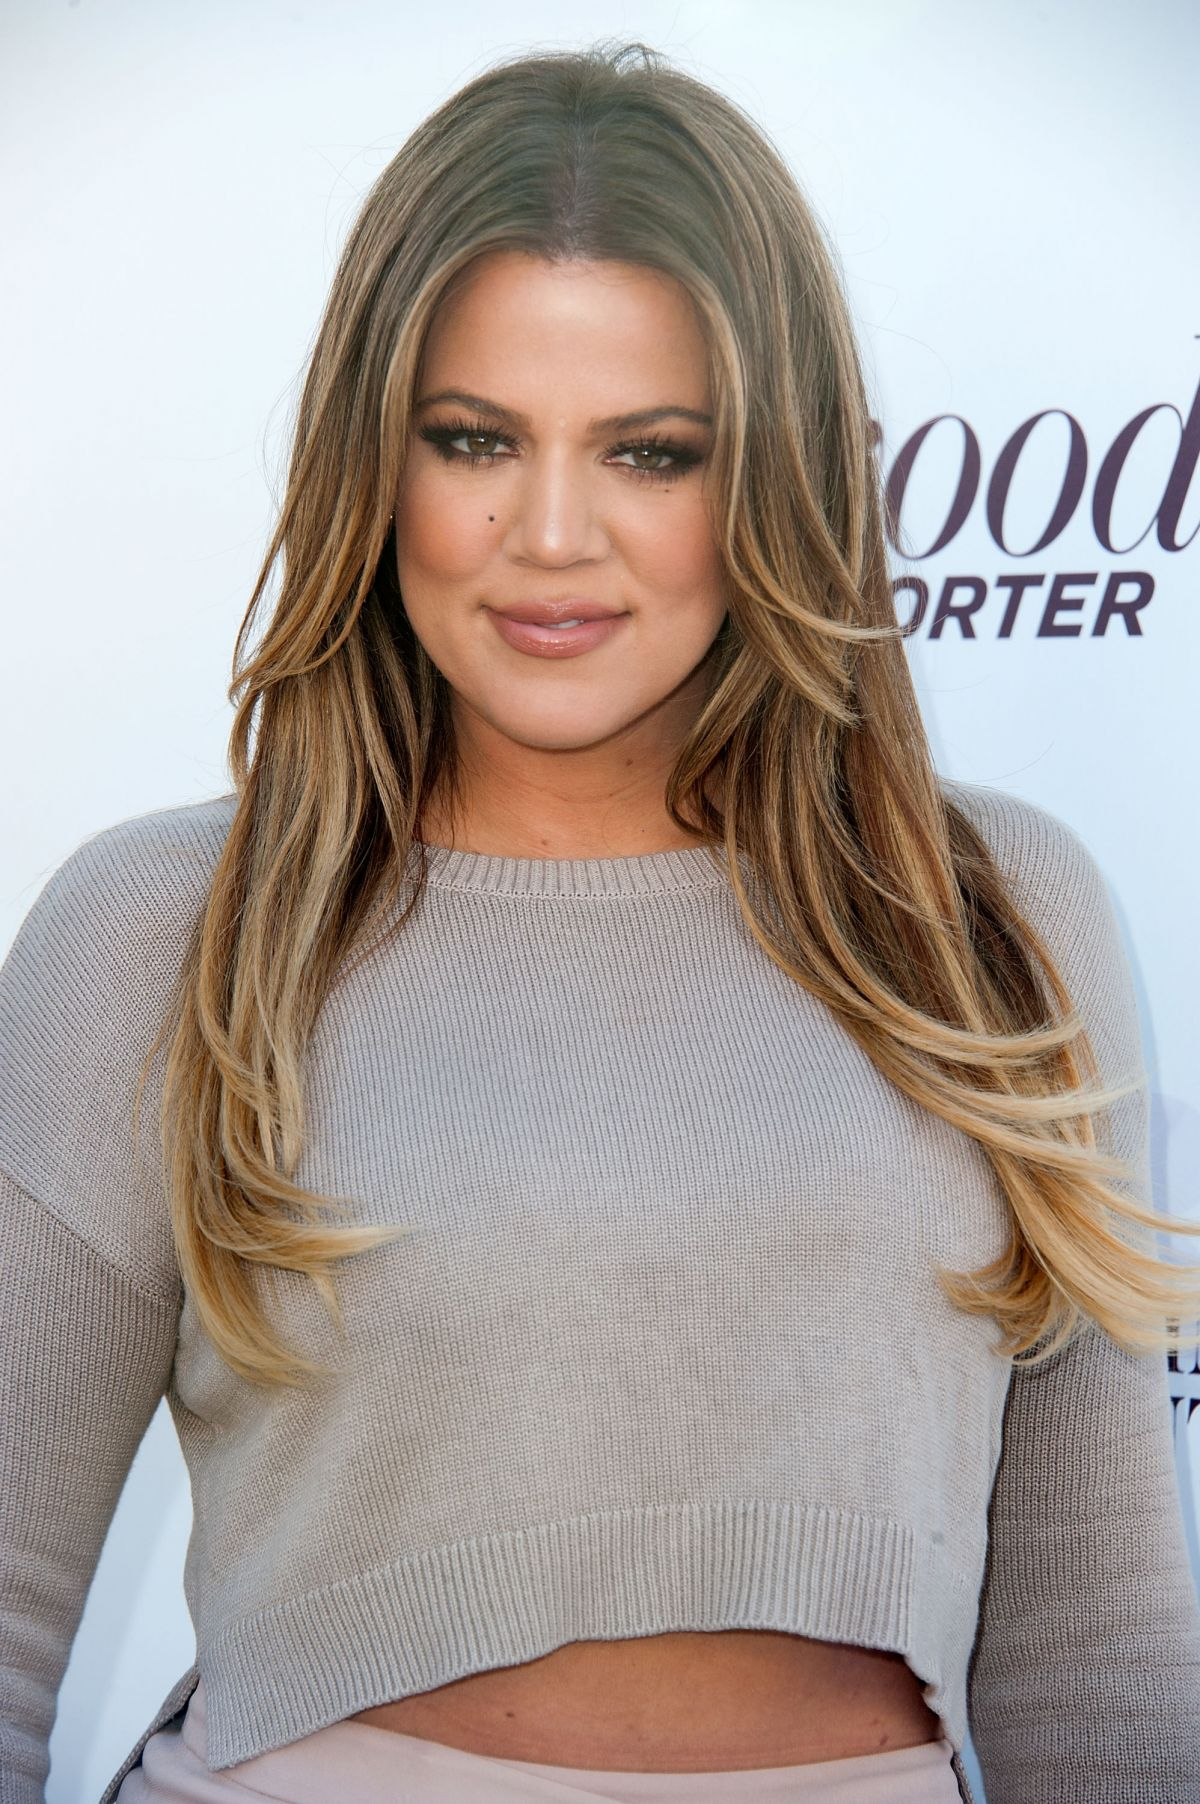 khloe kardashian - photo #48